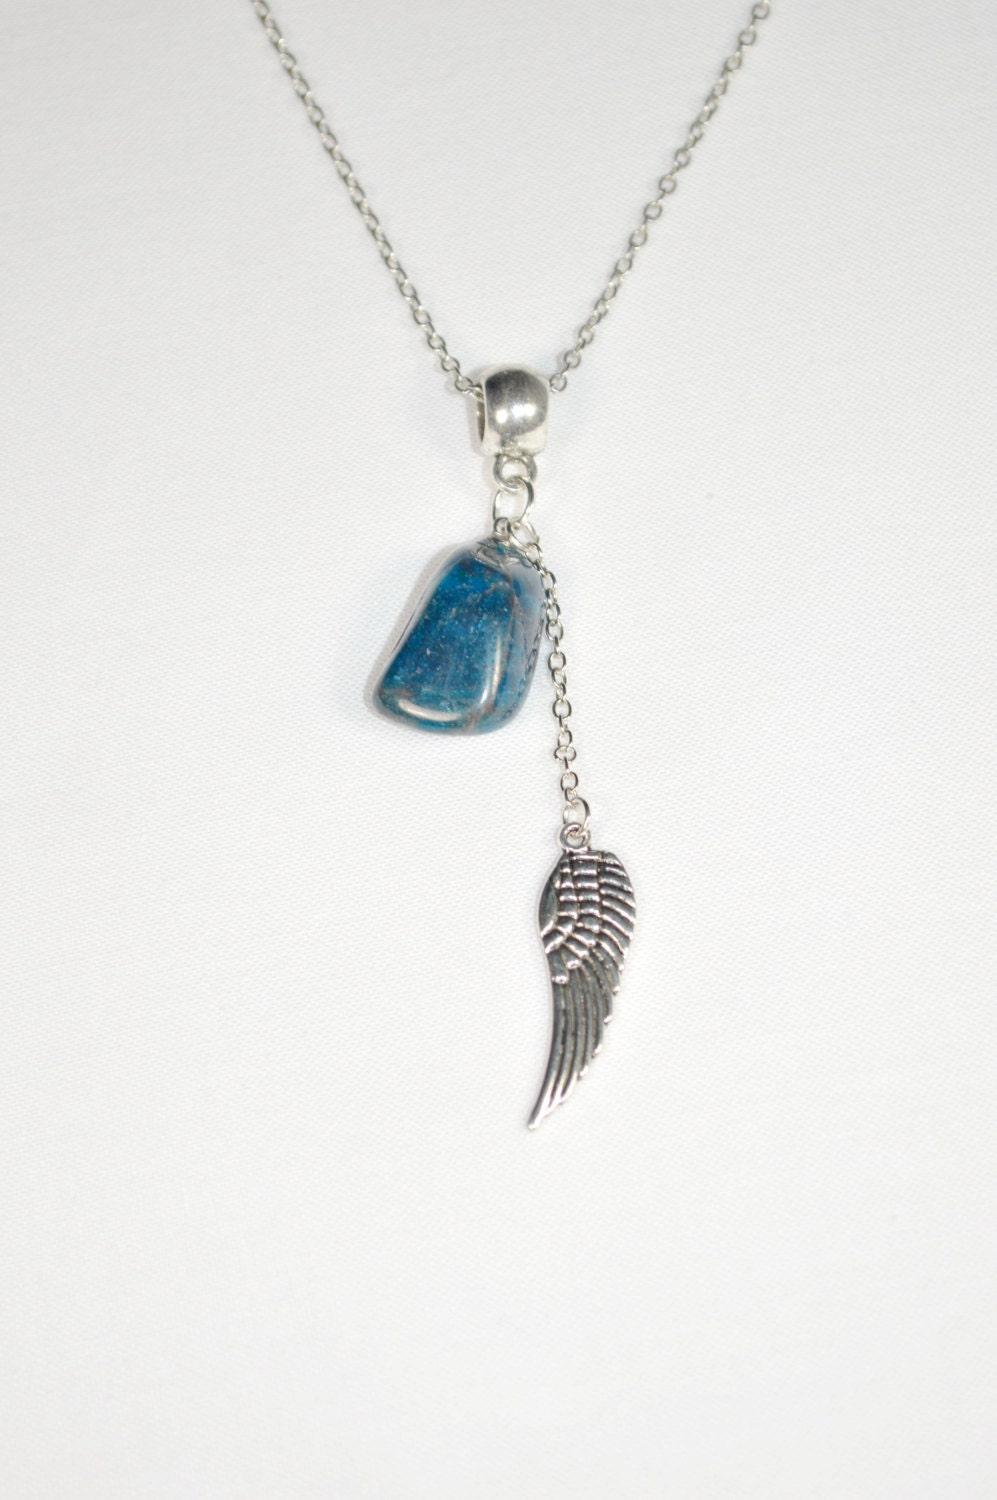 Apatite necklace angel wing necklace guardian angel apatite apatite necklace angel wing necklace guardian angel apatite necklace throat chakra apatite pendant guardian angel pendant necklace mozeypictures Images